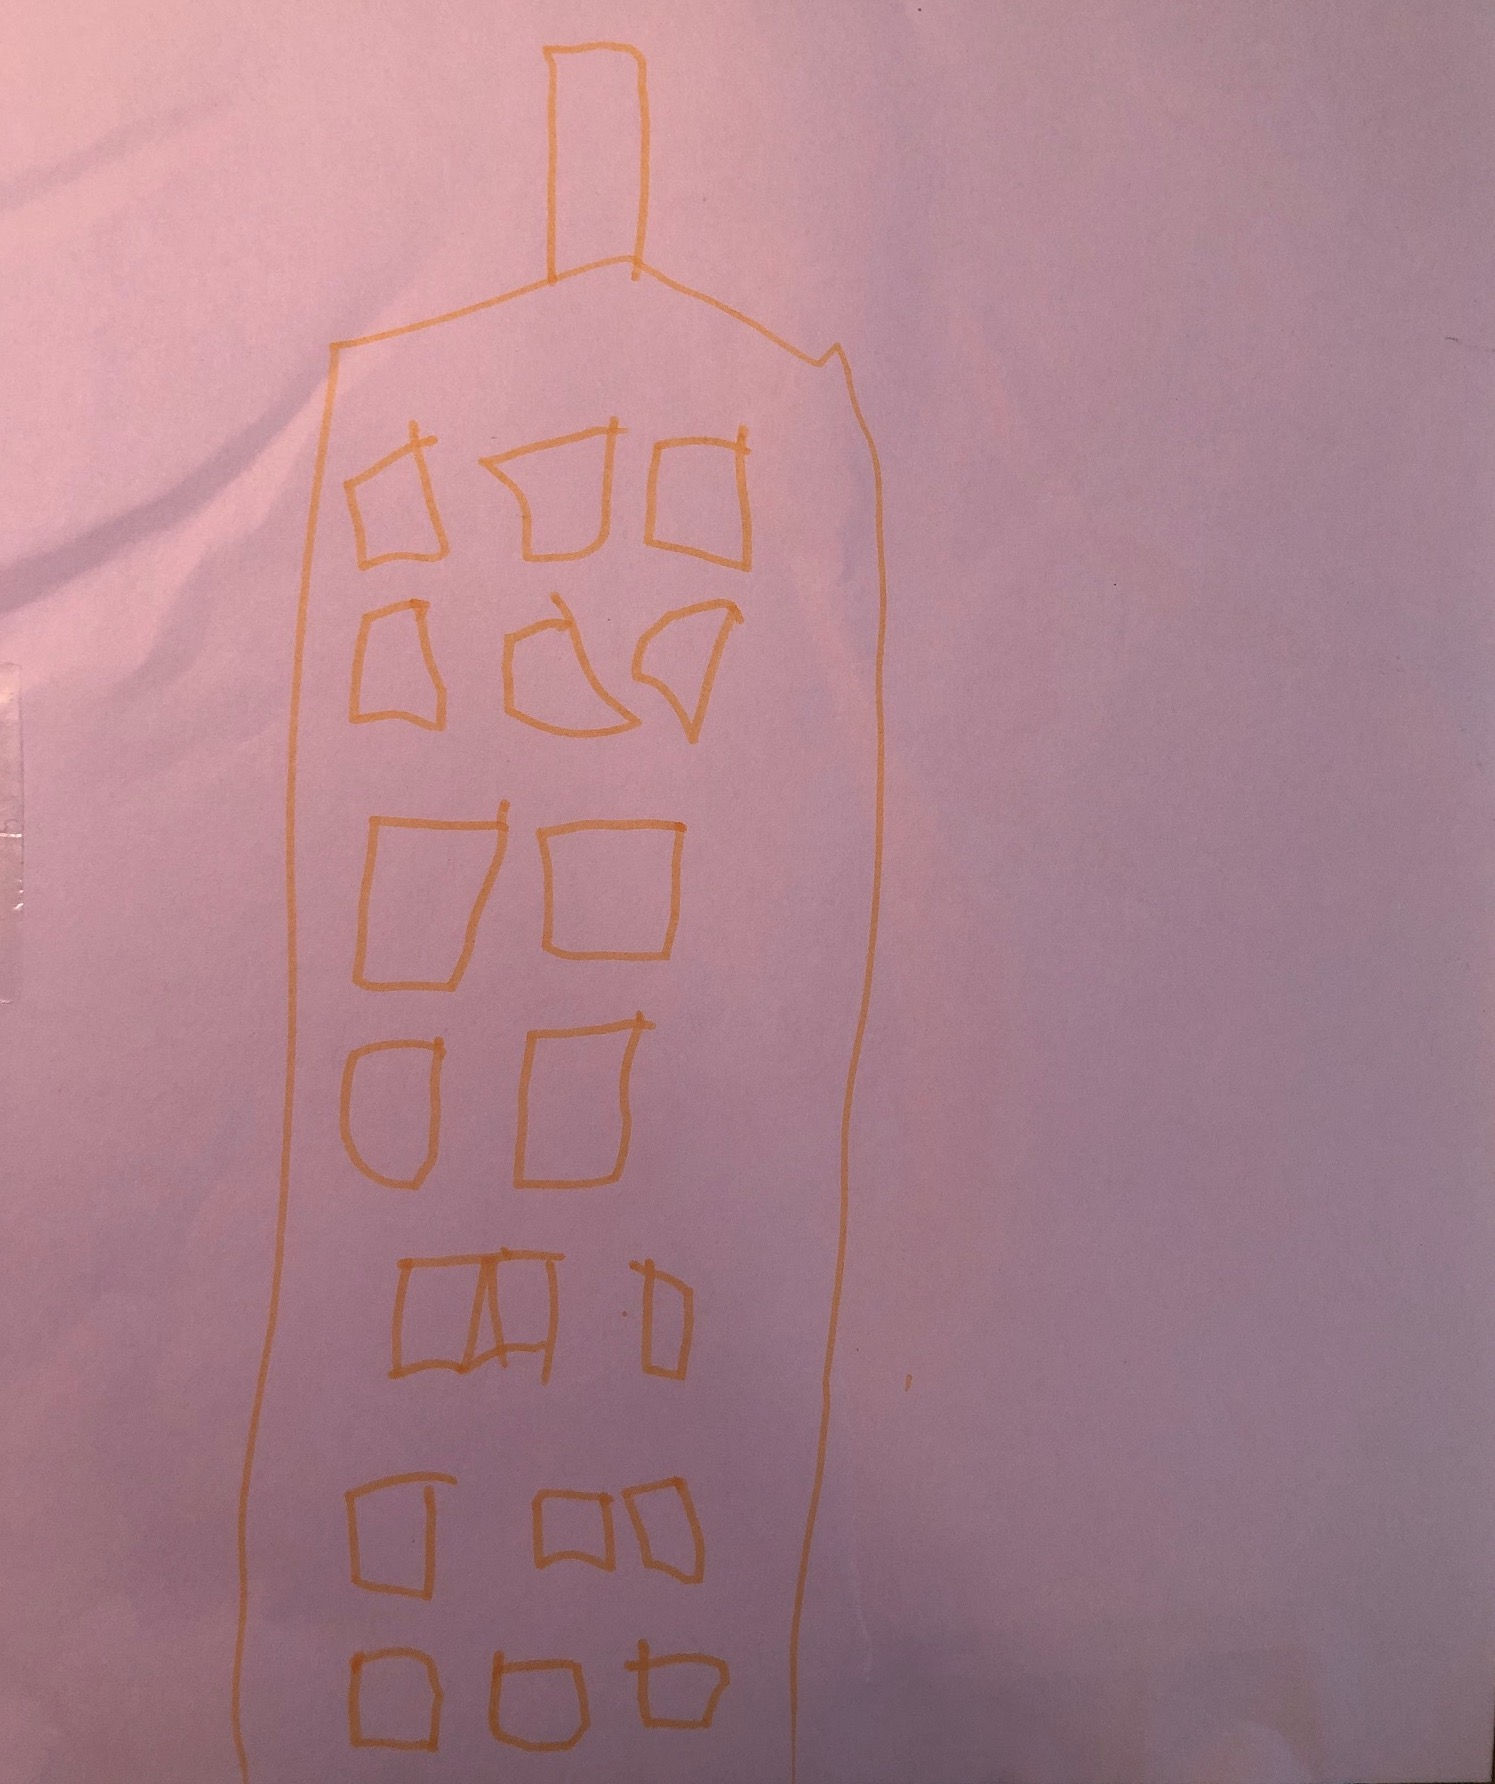 Empire State Building Drawing 2